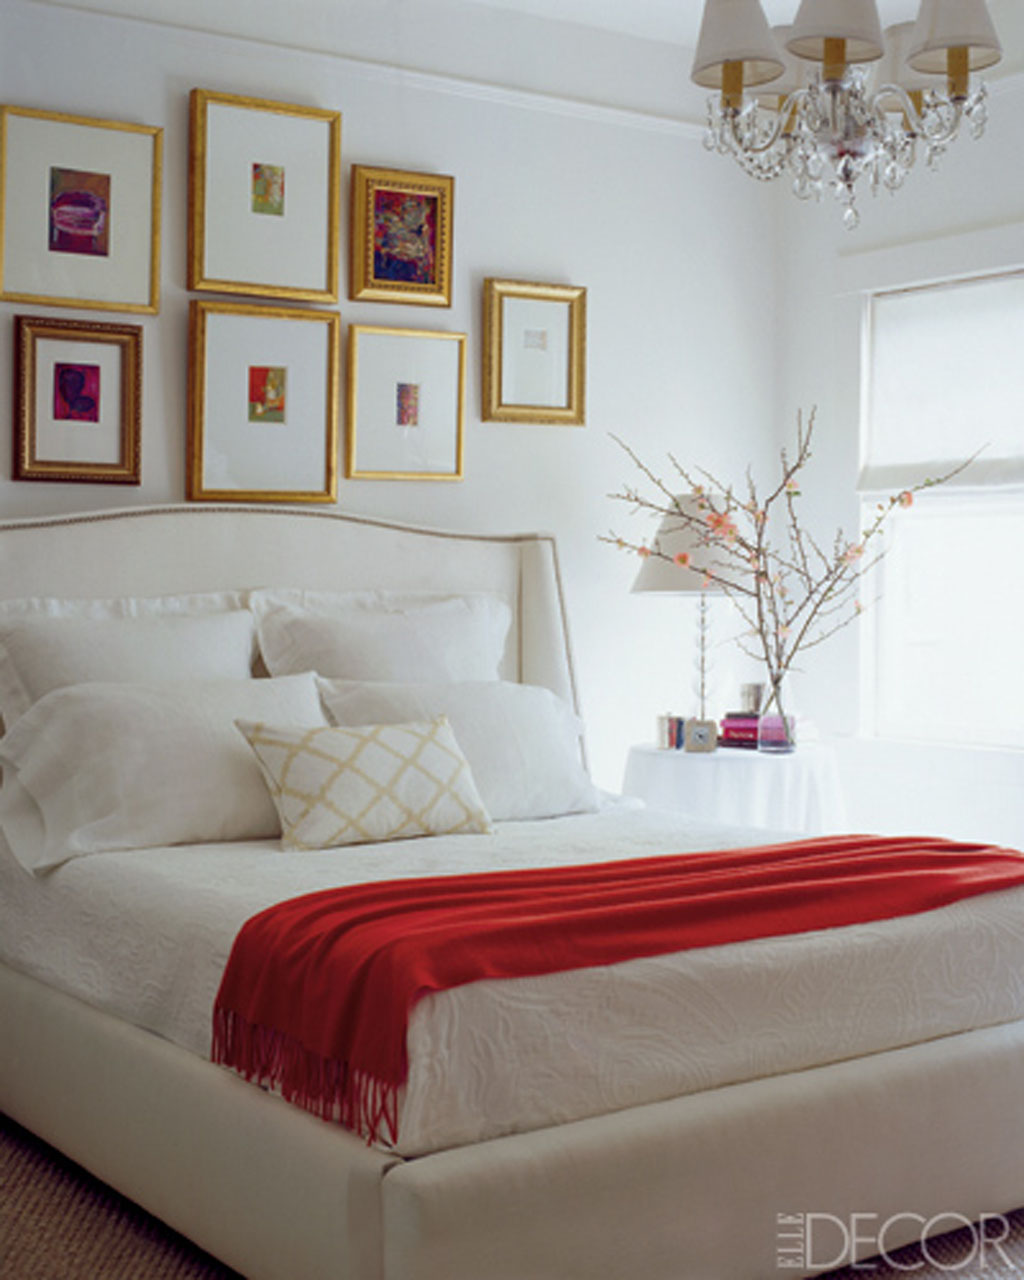 Bedroom Decorating Tips: 41 White Bedroom Interior Design Ideas & Pictures